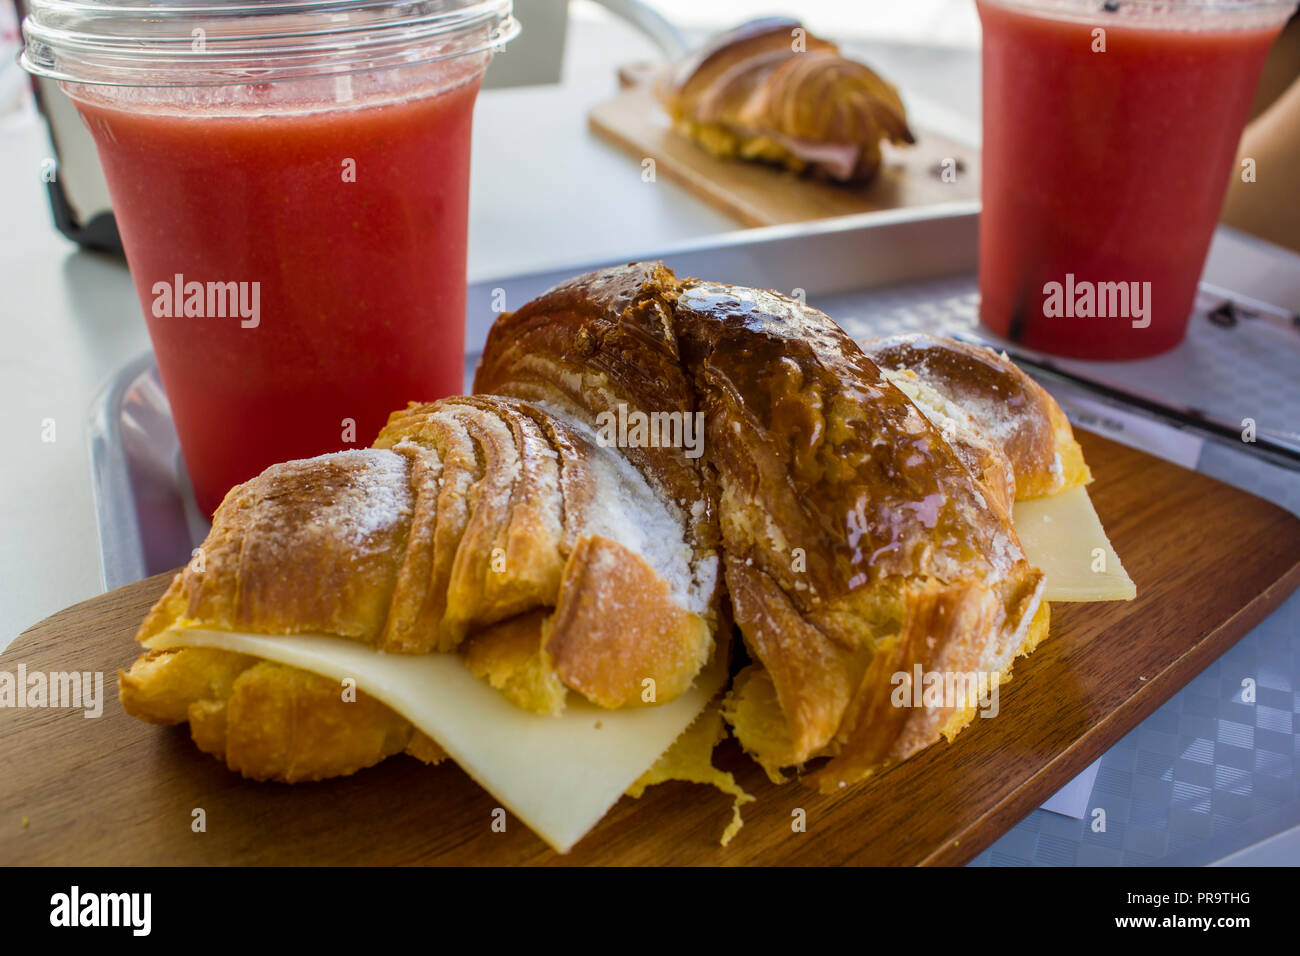 Freshly baked Croissant with cheese and natural watermelon juice on a plastic cup - Stock Image